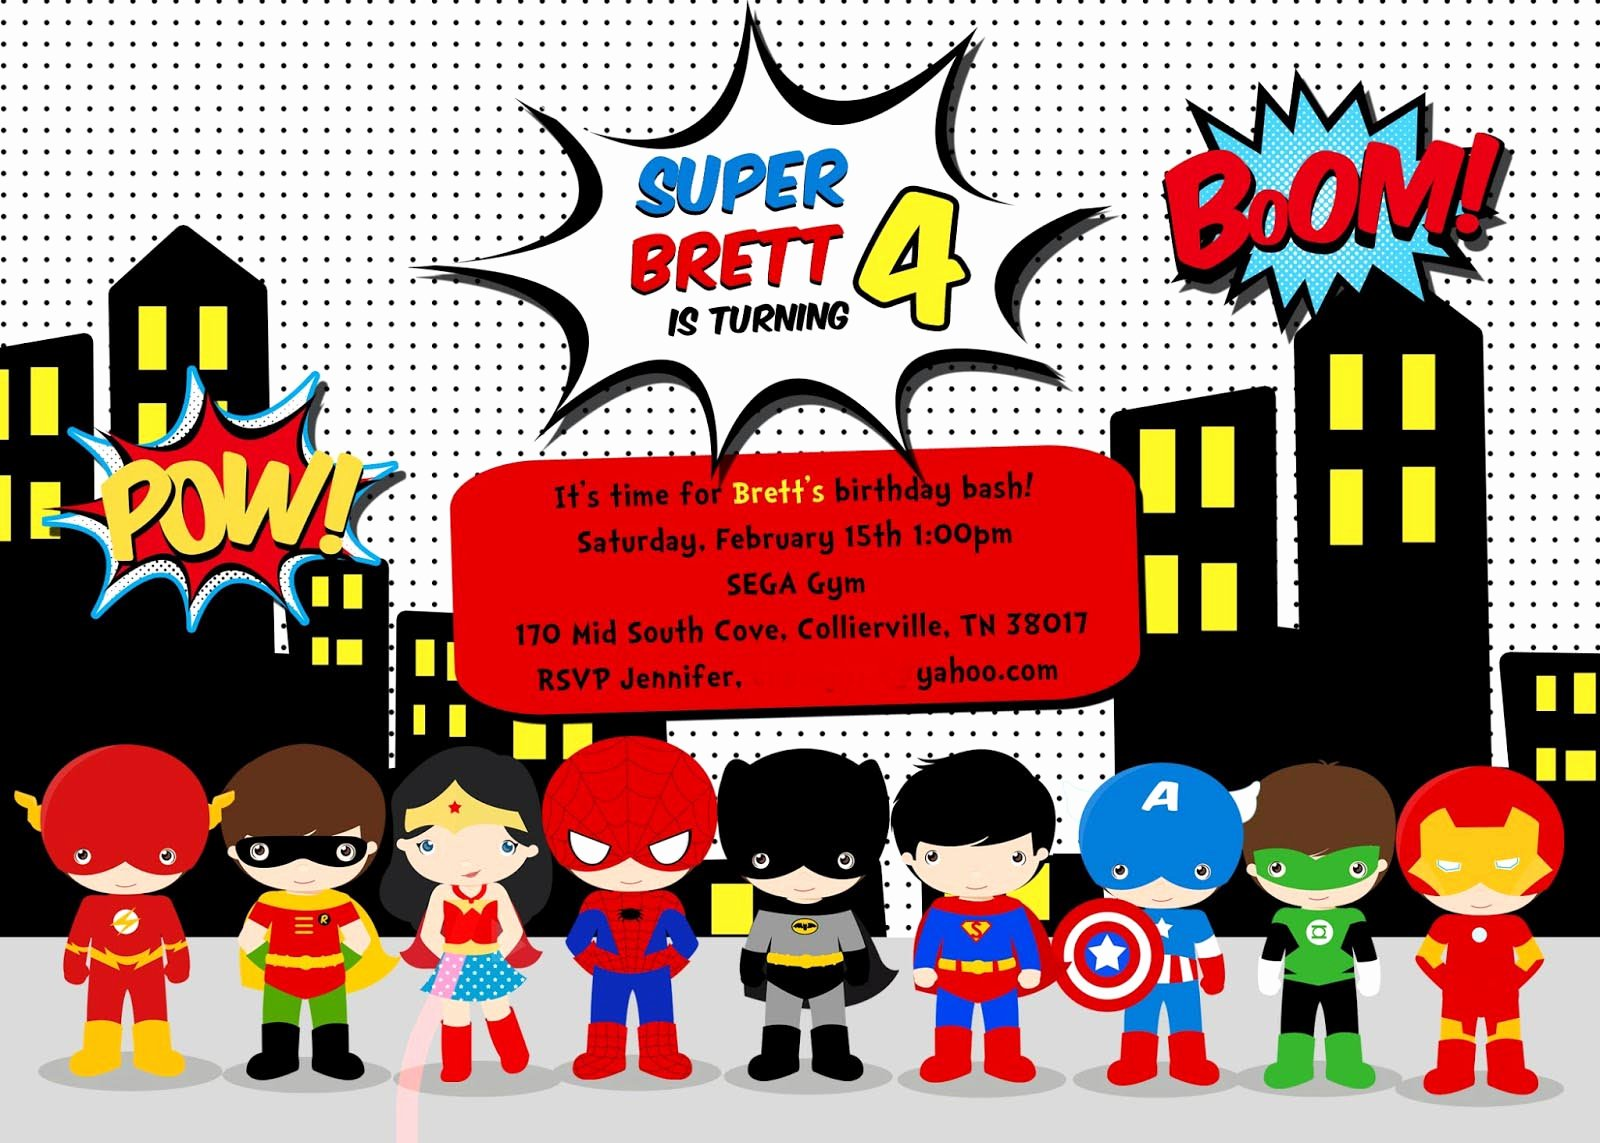 Superhero Birthday Invitations Templates Free New Free Superhero Birthday Party Invitation Templates